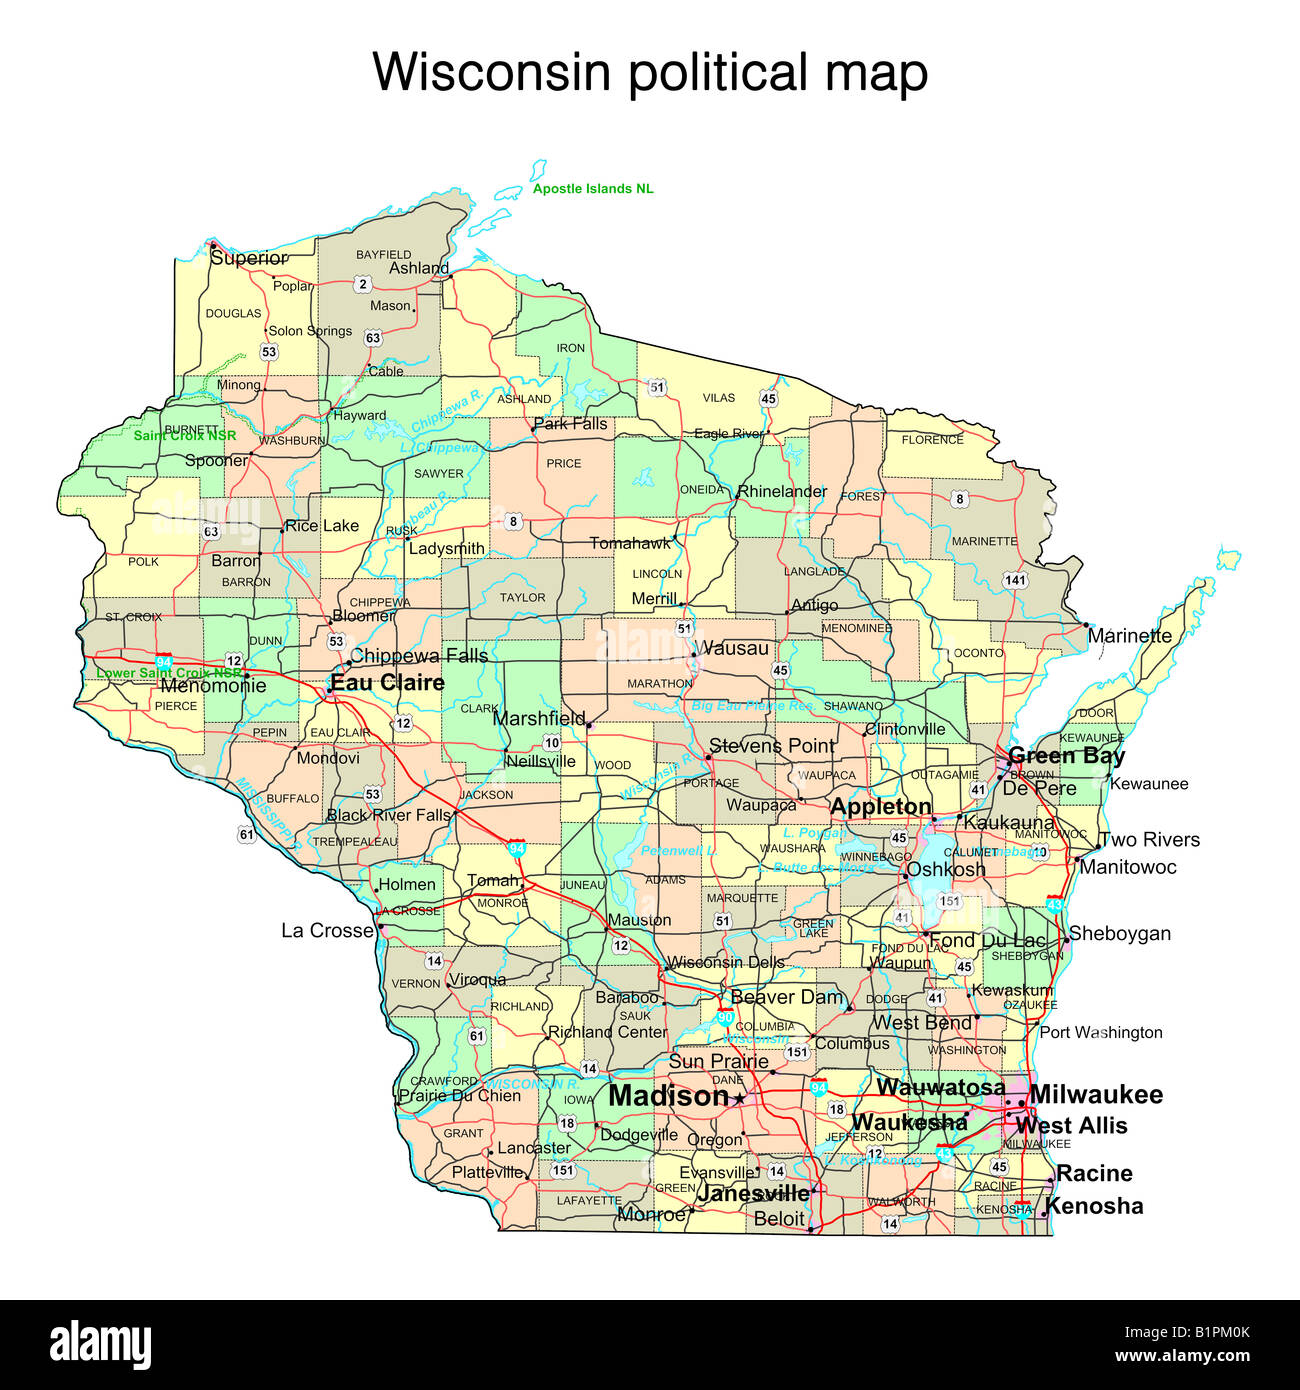 Wisconsin State Political Map Stock Photo 18323667 Alamy